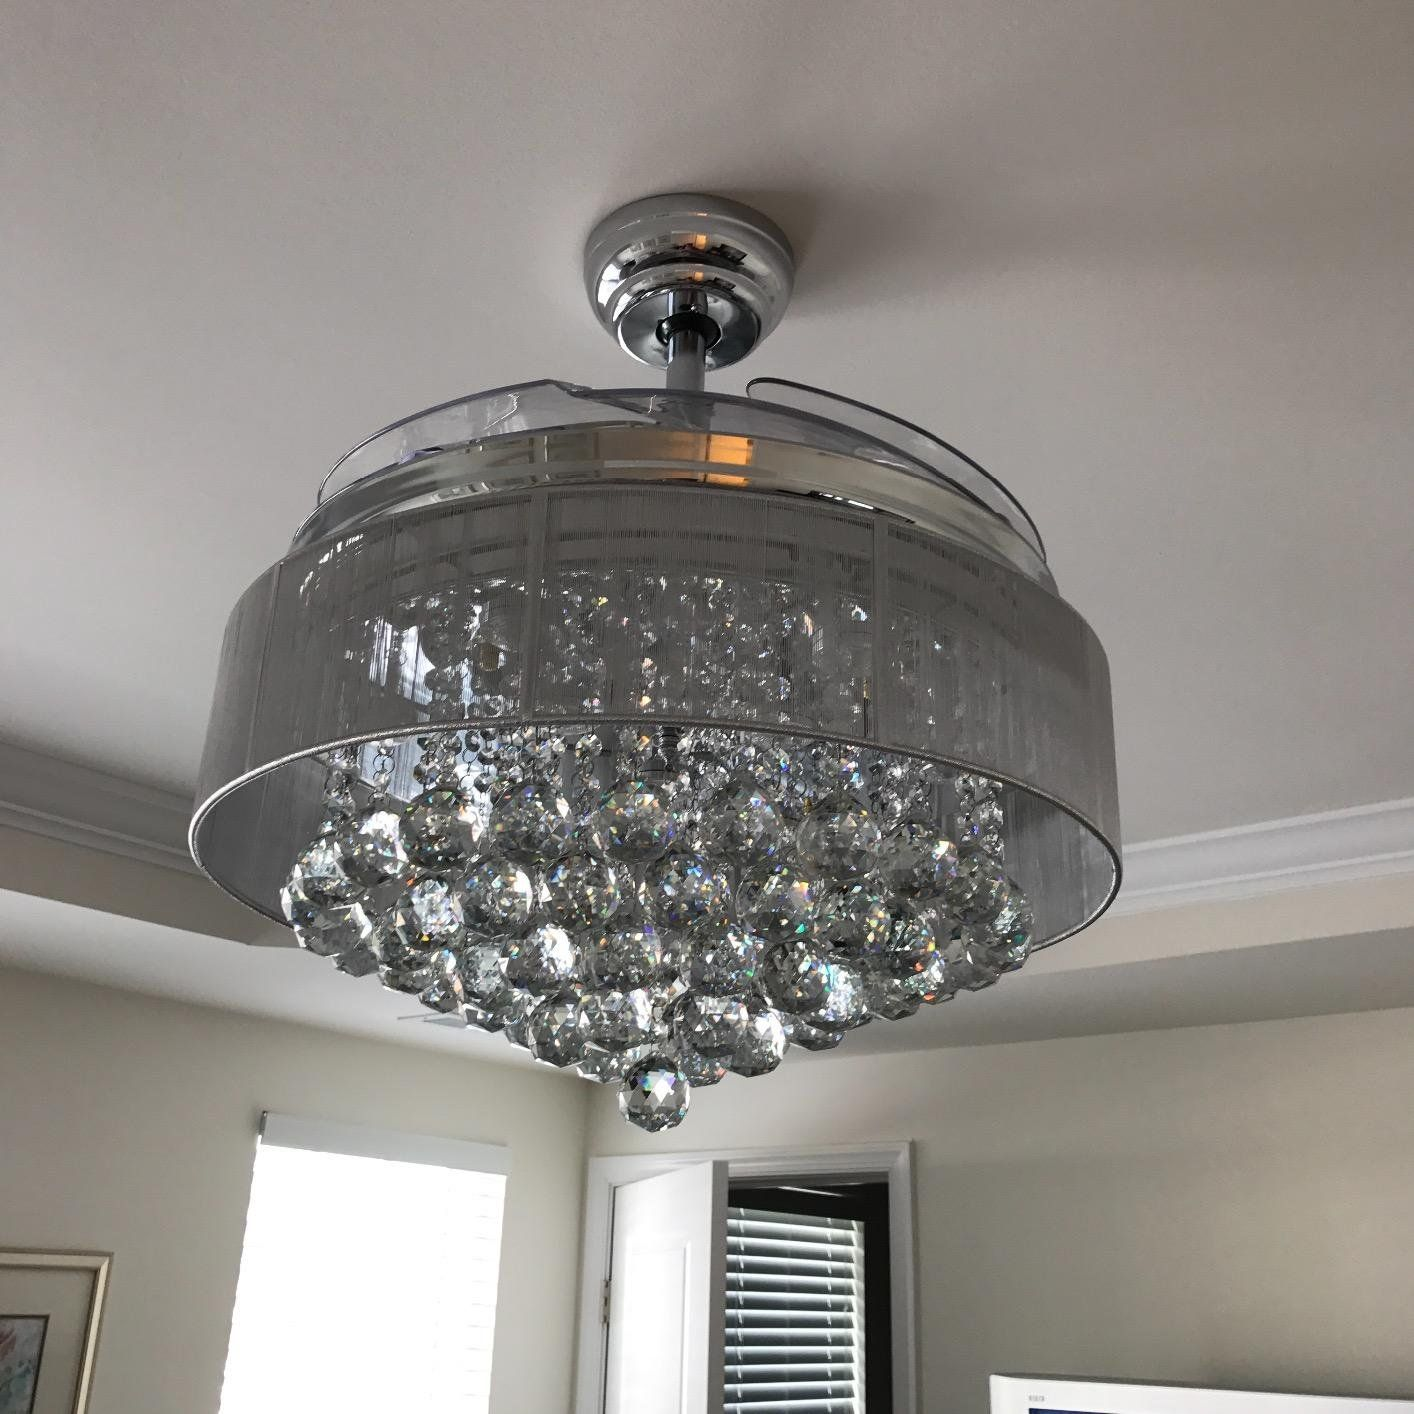 with brown beautiful light furniture blades no without color fan home modern breathtaking ceiling design for accessories and retractable ideas fans awesome